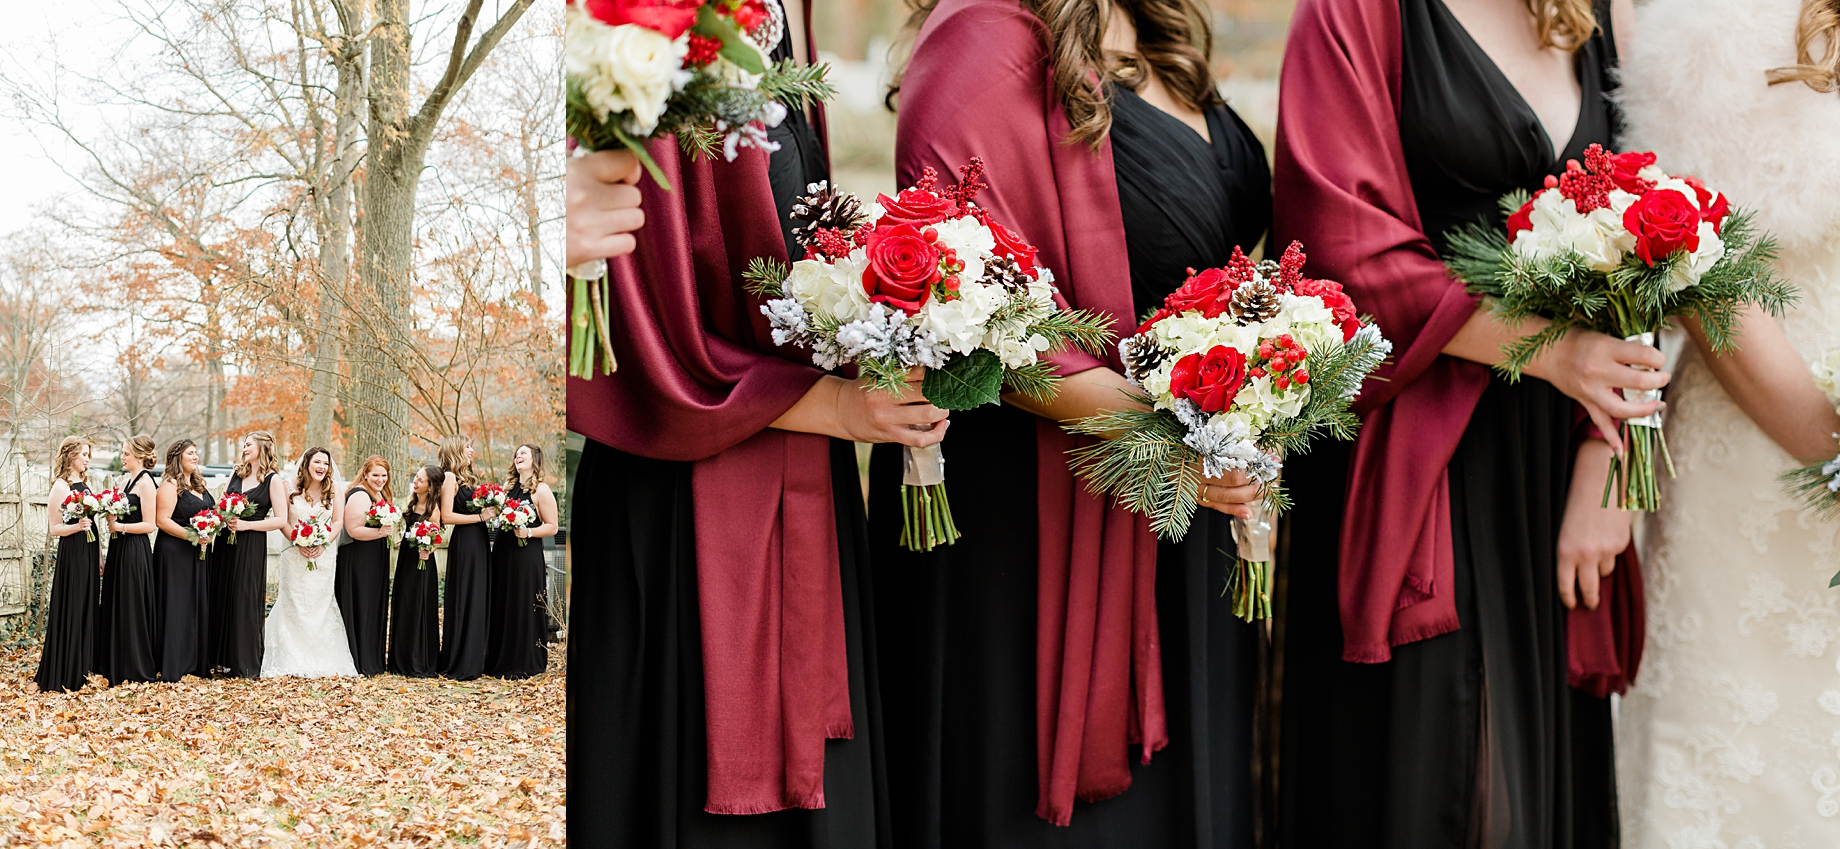 Christmas wedding bridesmaid Bouquet by Tunies Floral Expressions | Philadelphia Winter Wedding